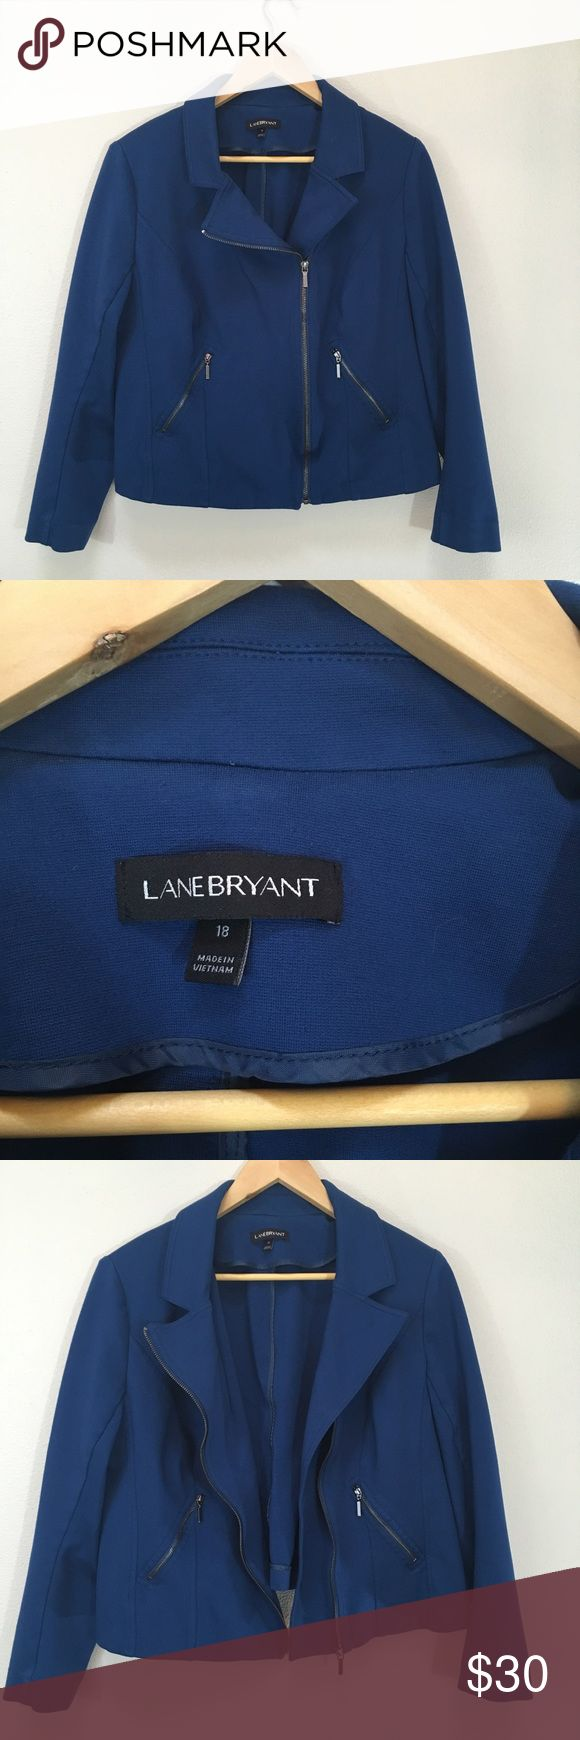 Lane Bryant Blue Zip Up Moto Style Jacket Size 18 Lane Bryant Blue Zip Up Moto Style Jacket Asymmetrical Zipper Women's Size 18. Excellent condition! Clean and comes from smoke free home. Questions welcomed. Lane Bryant Jackets & Coats